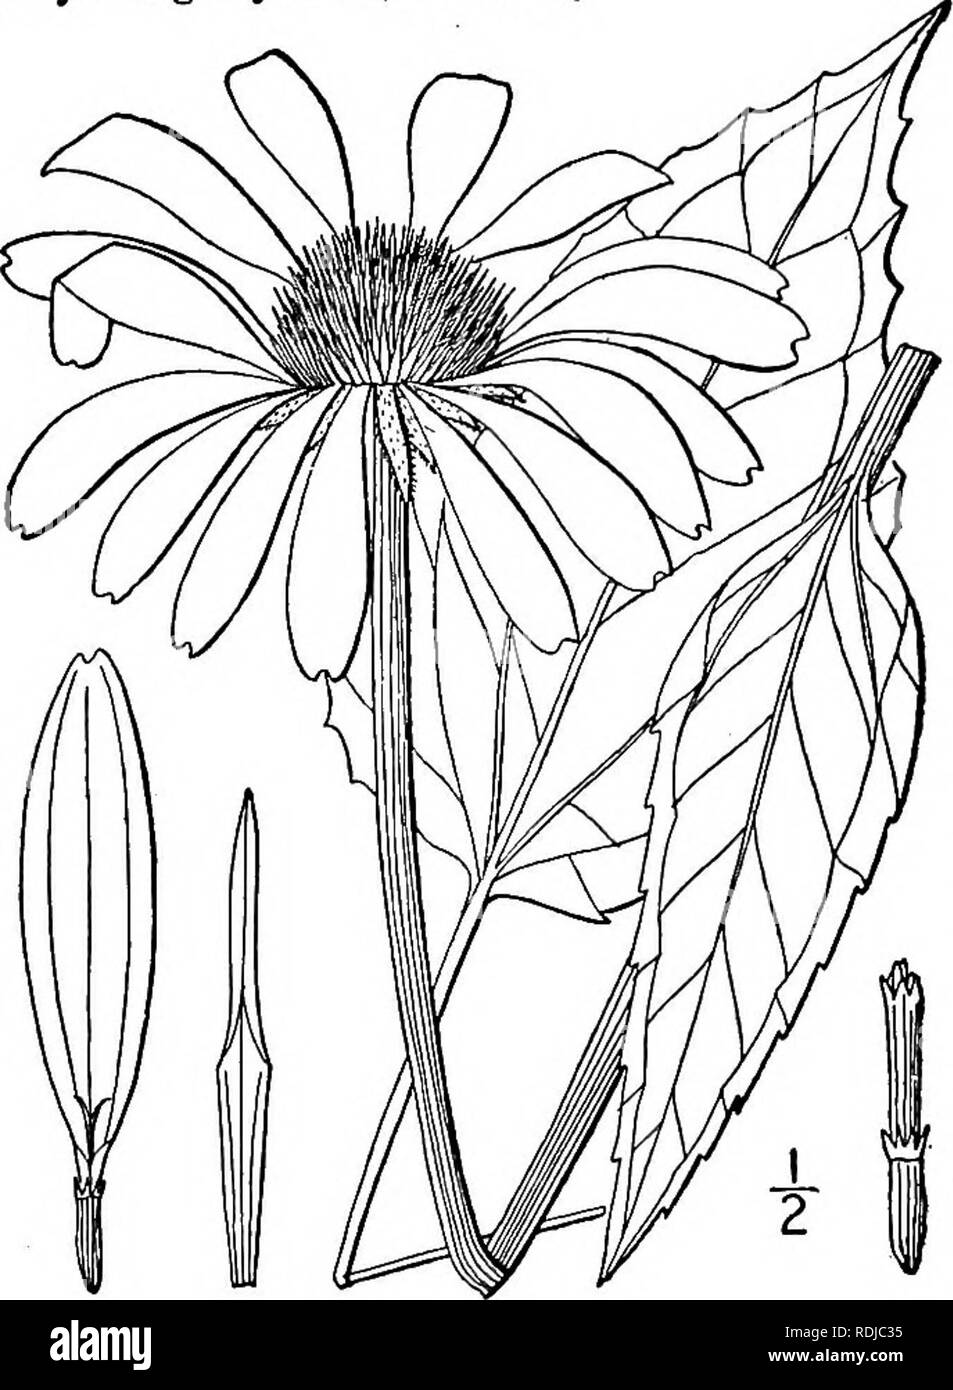 . An illustrated flora of the northern United States, Canada and the British possessions, from Newfoundland to the parallel of the southern boundary of Virginia, and from the Atlantic Ocean westward to the 102d meridian. Botany; Botany. E. purpurea. E. angustifolia. E. pallida. E. paradoxa.. i. Echinacea purpurea (L.) Moench. Purple Cone-flower. Black Sampson. Fig. 4456. Rudbeckia purpurea L. Sp. PI. 907. 1753. Echinacea purpurea Moench, Meth. 591. 1794- Brauneria purpurea Britton, Mem. Torr. Club 5 : 334. 1894. Stem glabrous, or sparingly hispid, usually stout, 2°-5° high. Lower and basal lea - Stock Image